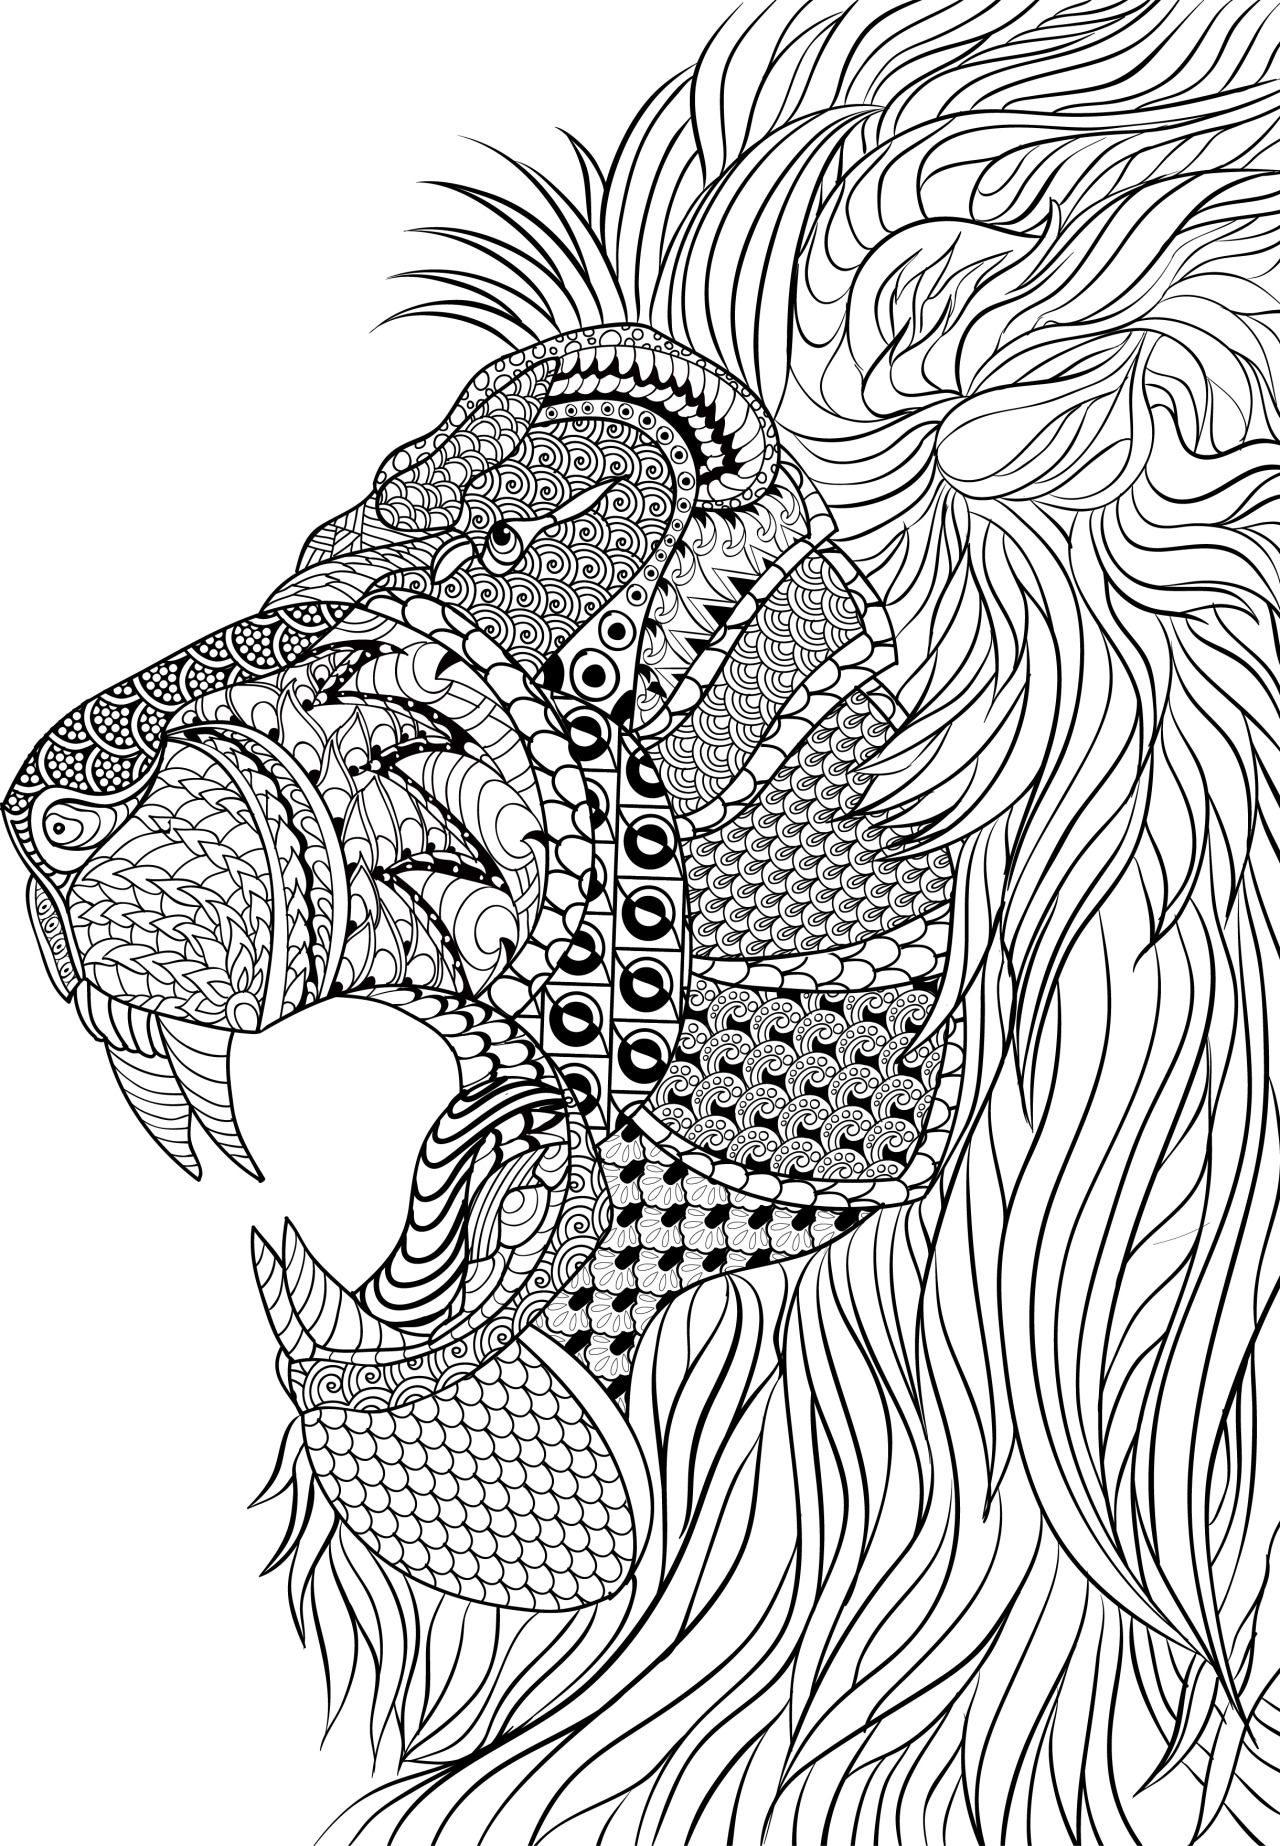 Adults colouring book pages - This Image Comes From Our Very Own Book Titled Adult Coloring Book 30 Henna Inspired